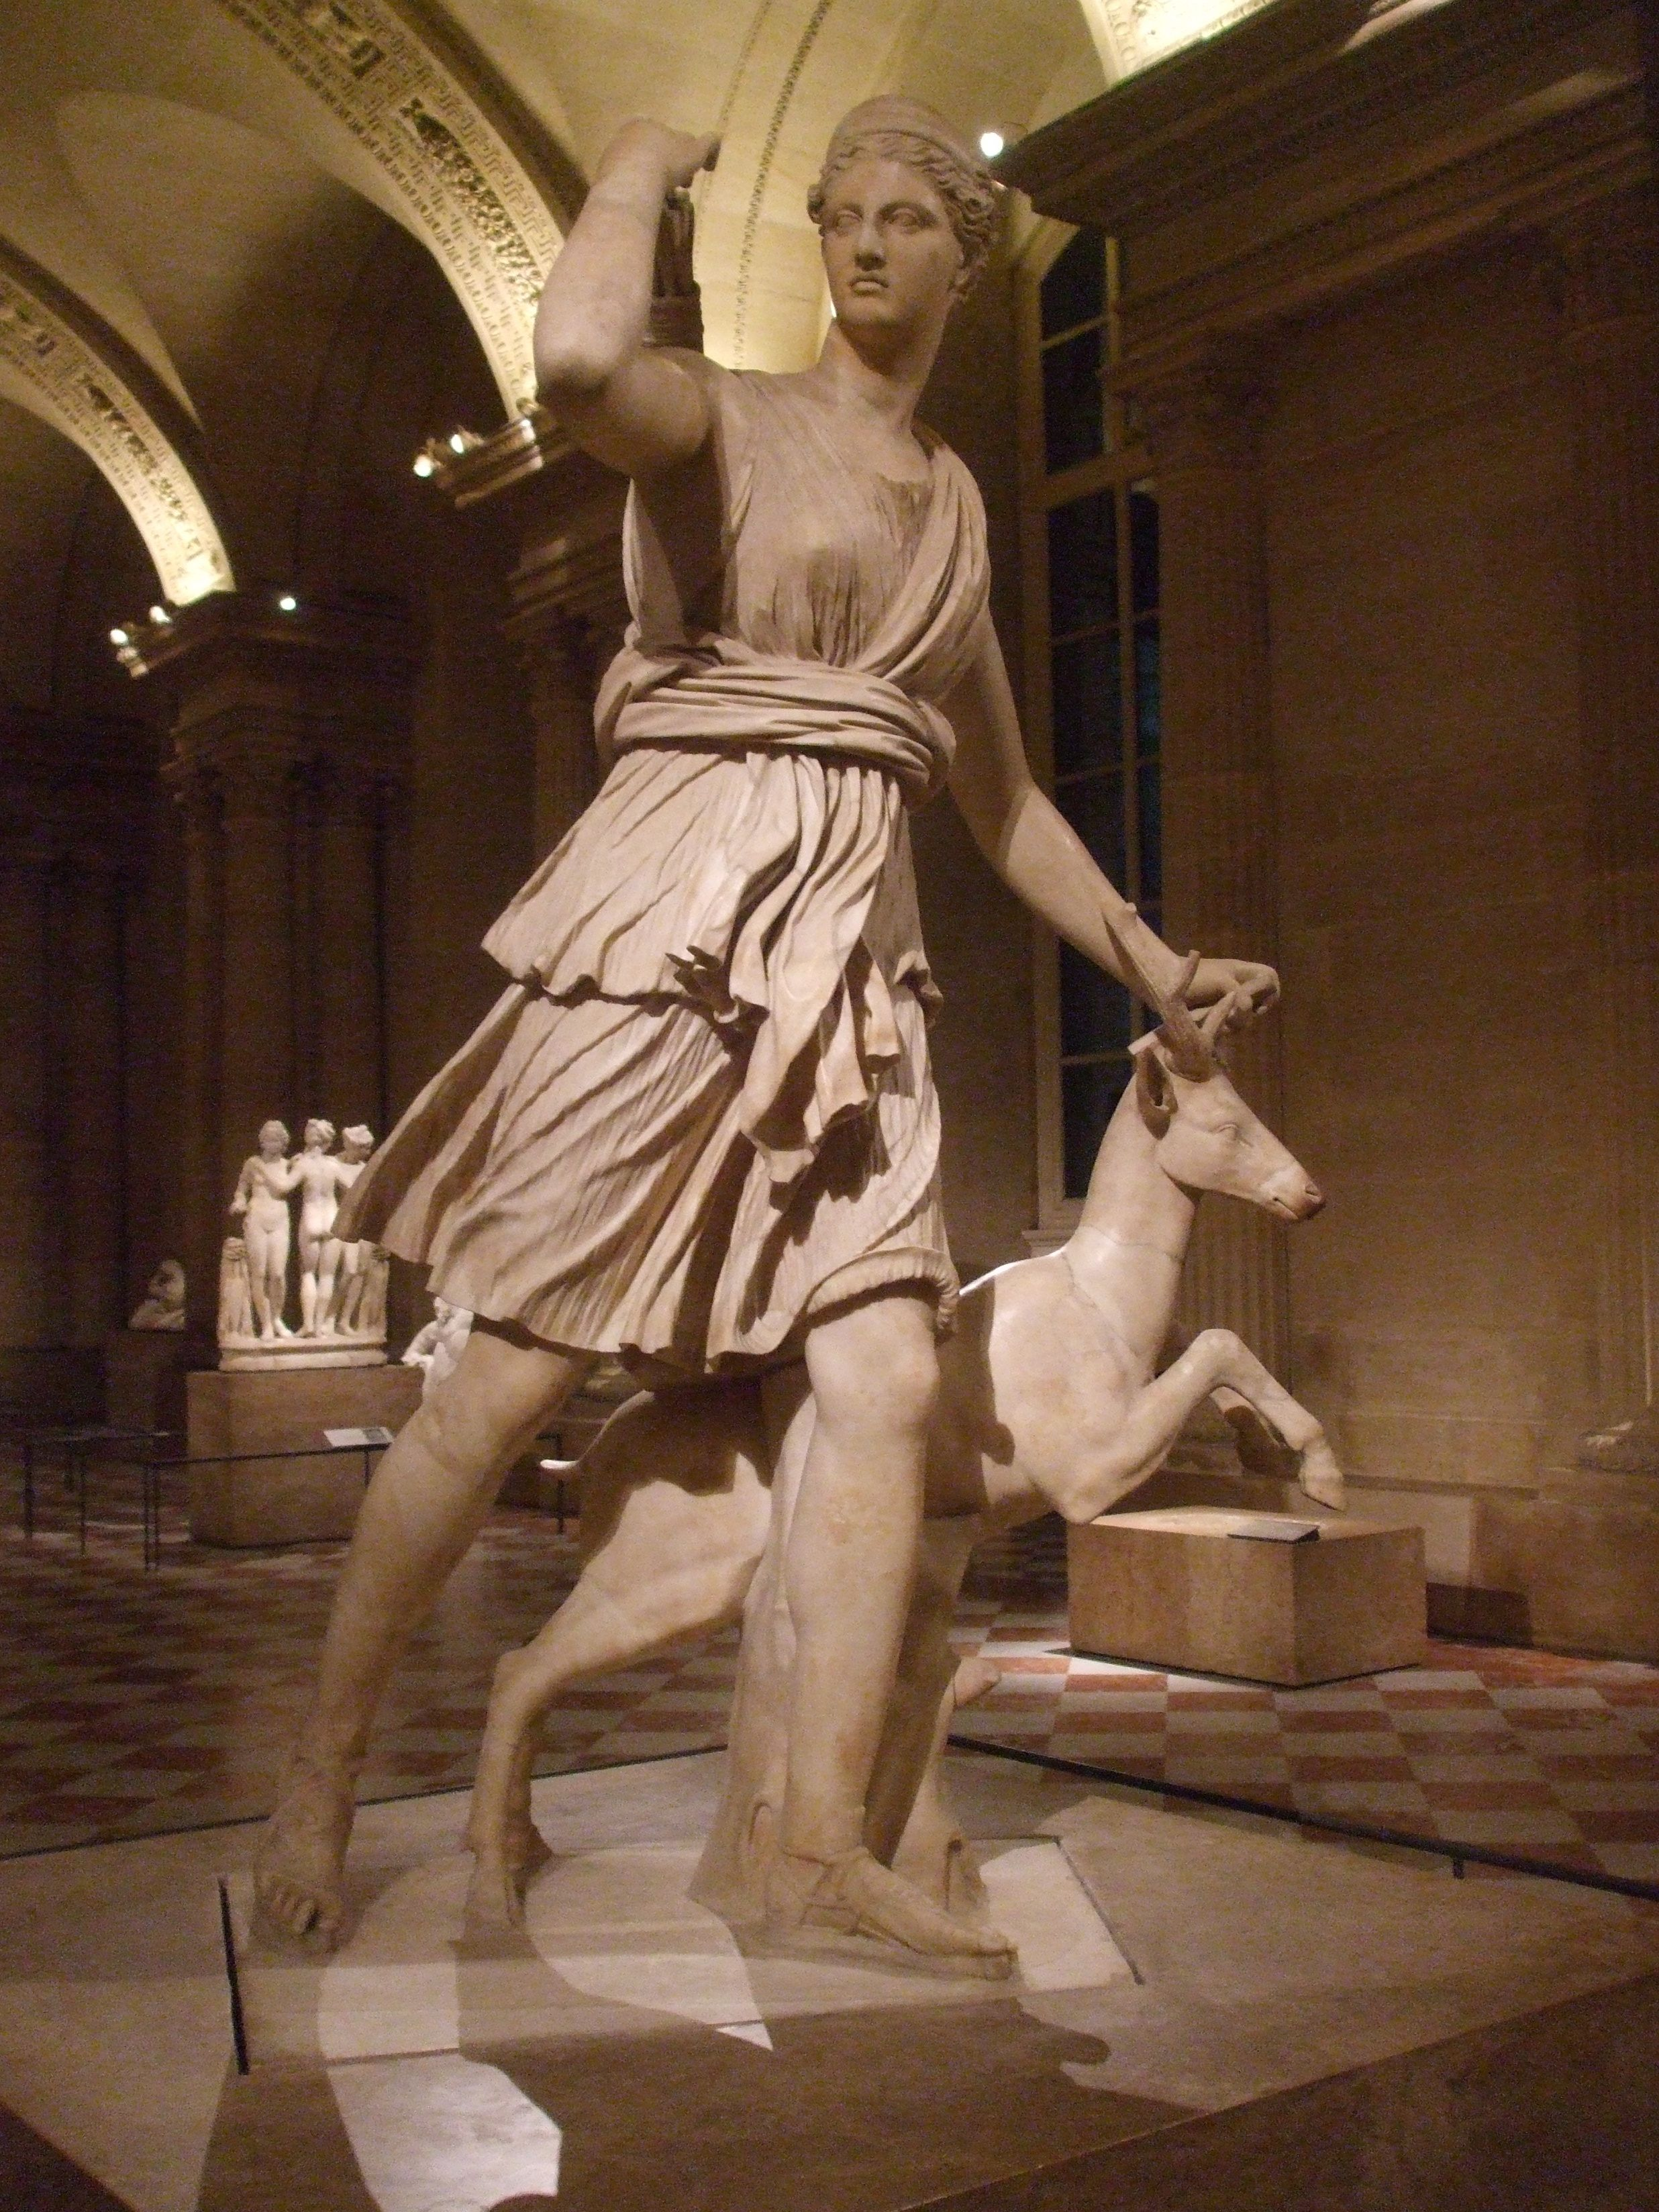 Diana of Versailles. Artemis and Athena were always my favourites among the Greek gods and goddesses. A replica can be found in the Chateau de Versailles.